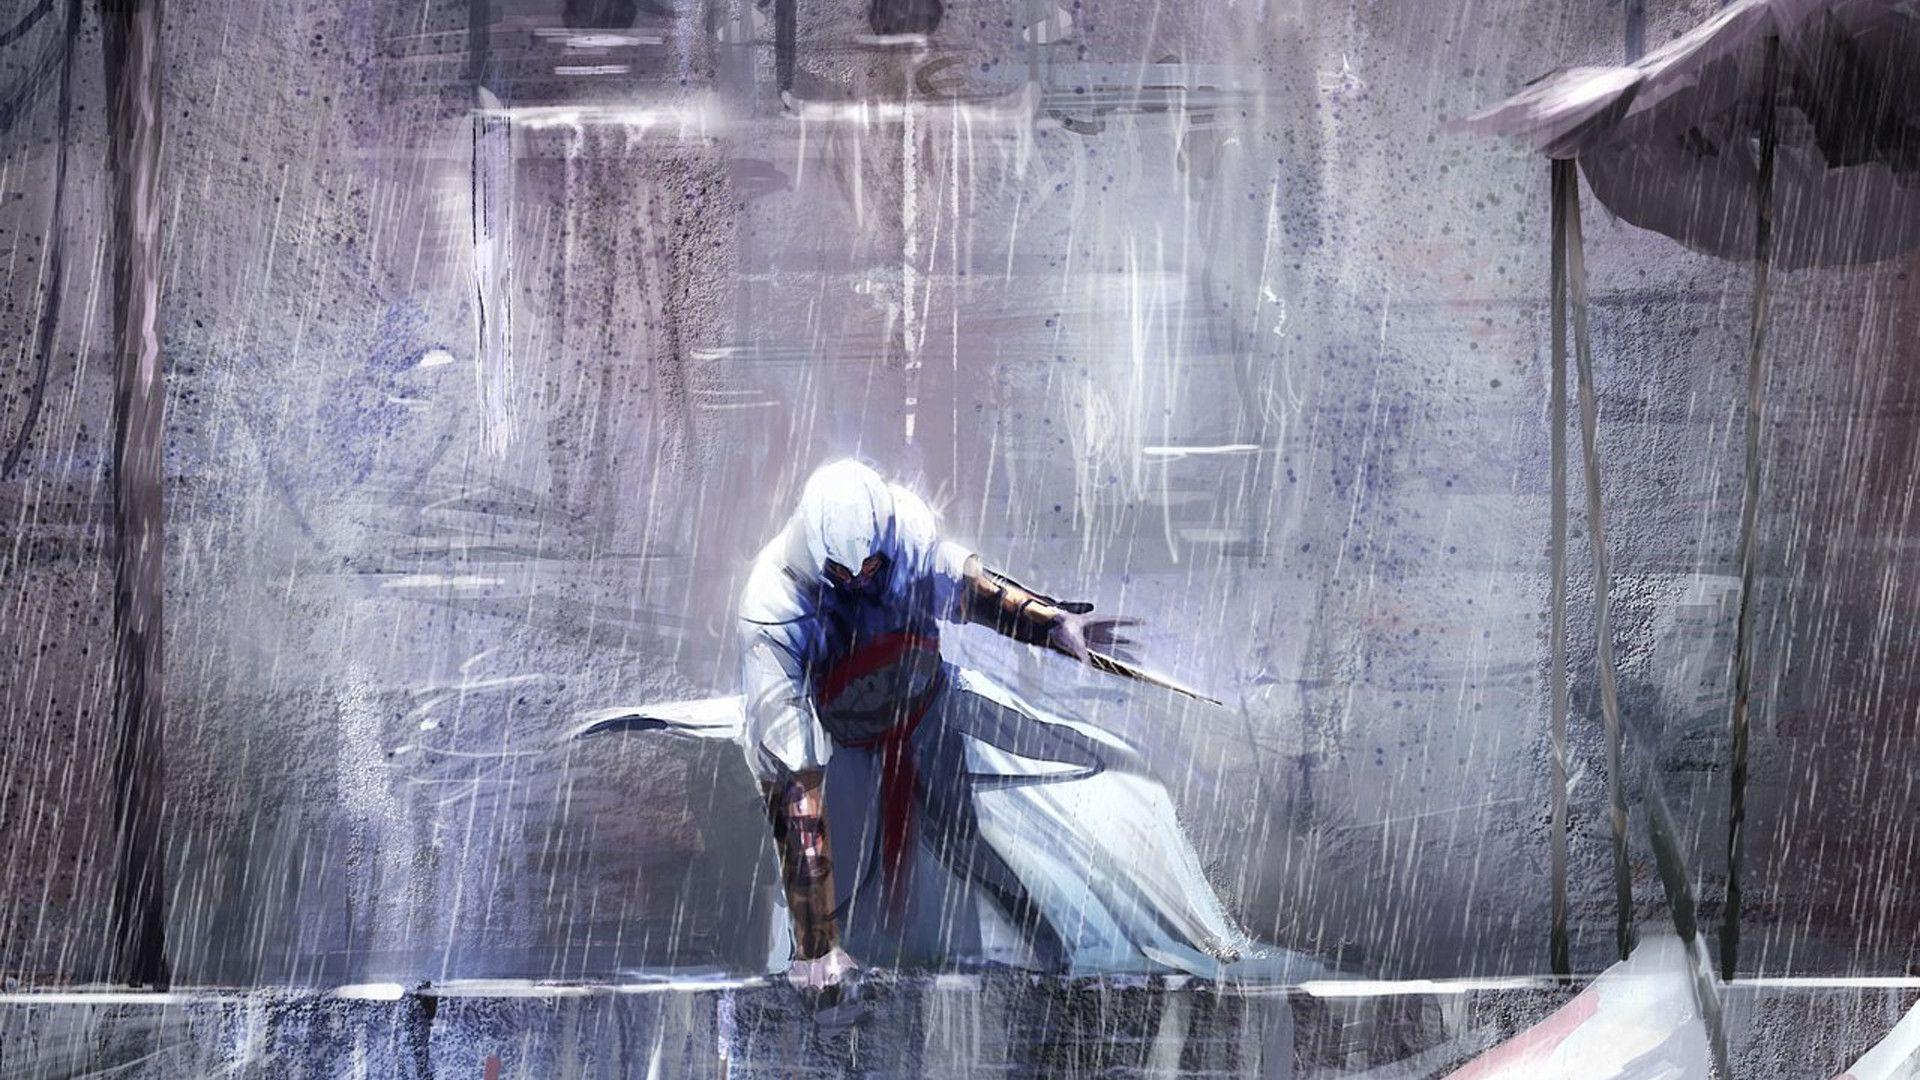 Assassins Creed HD Wallpapers - Wallpaper Cave